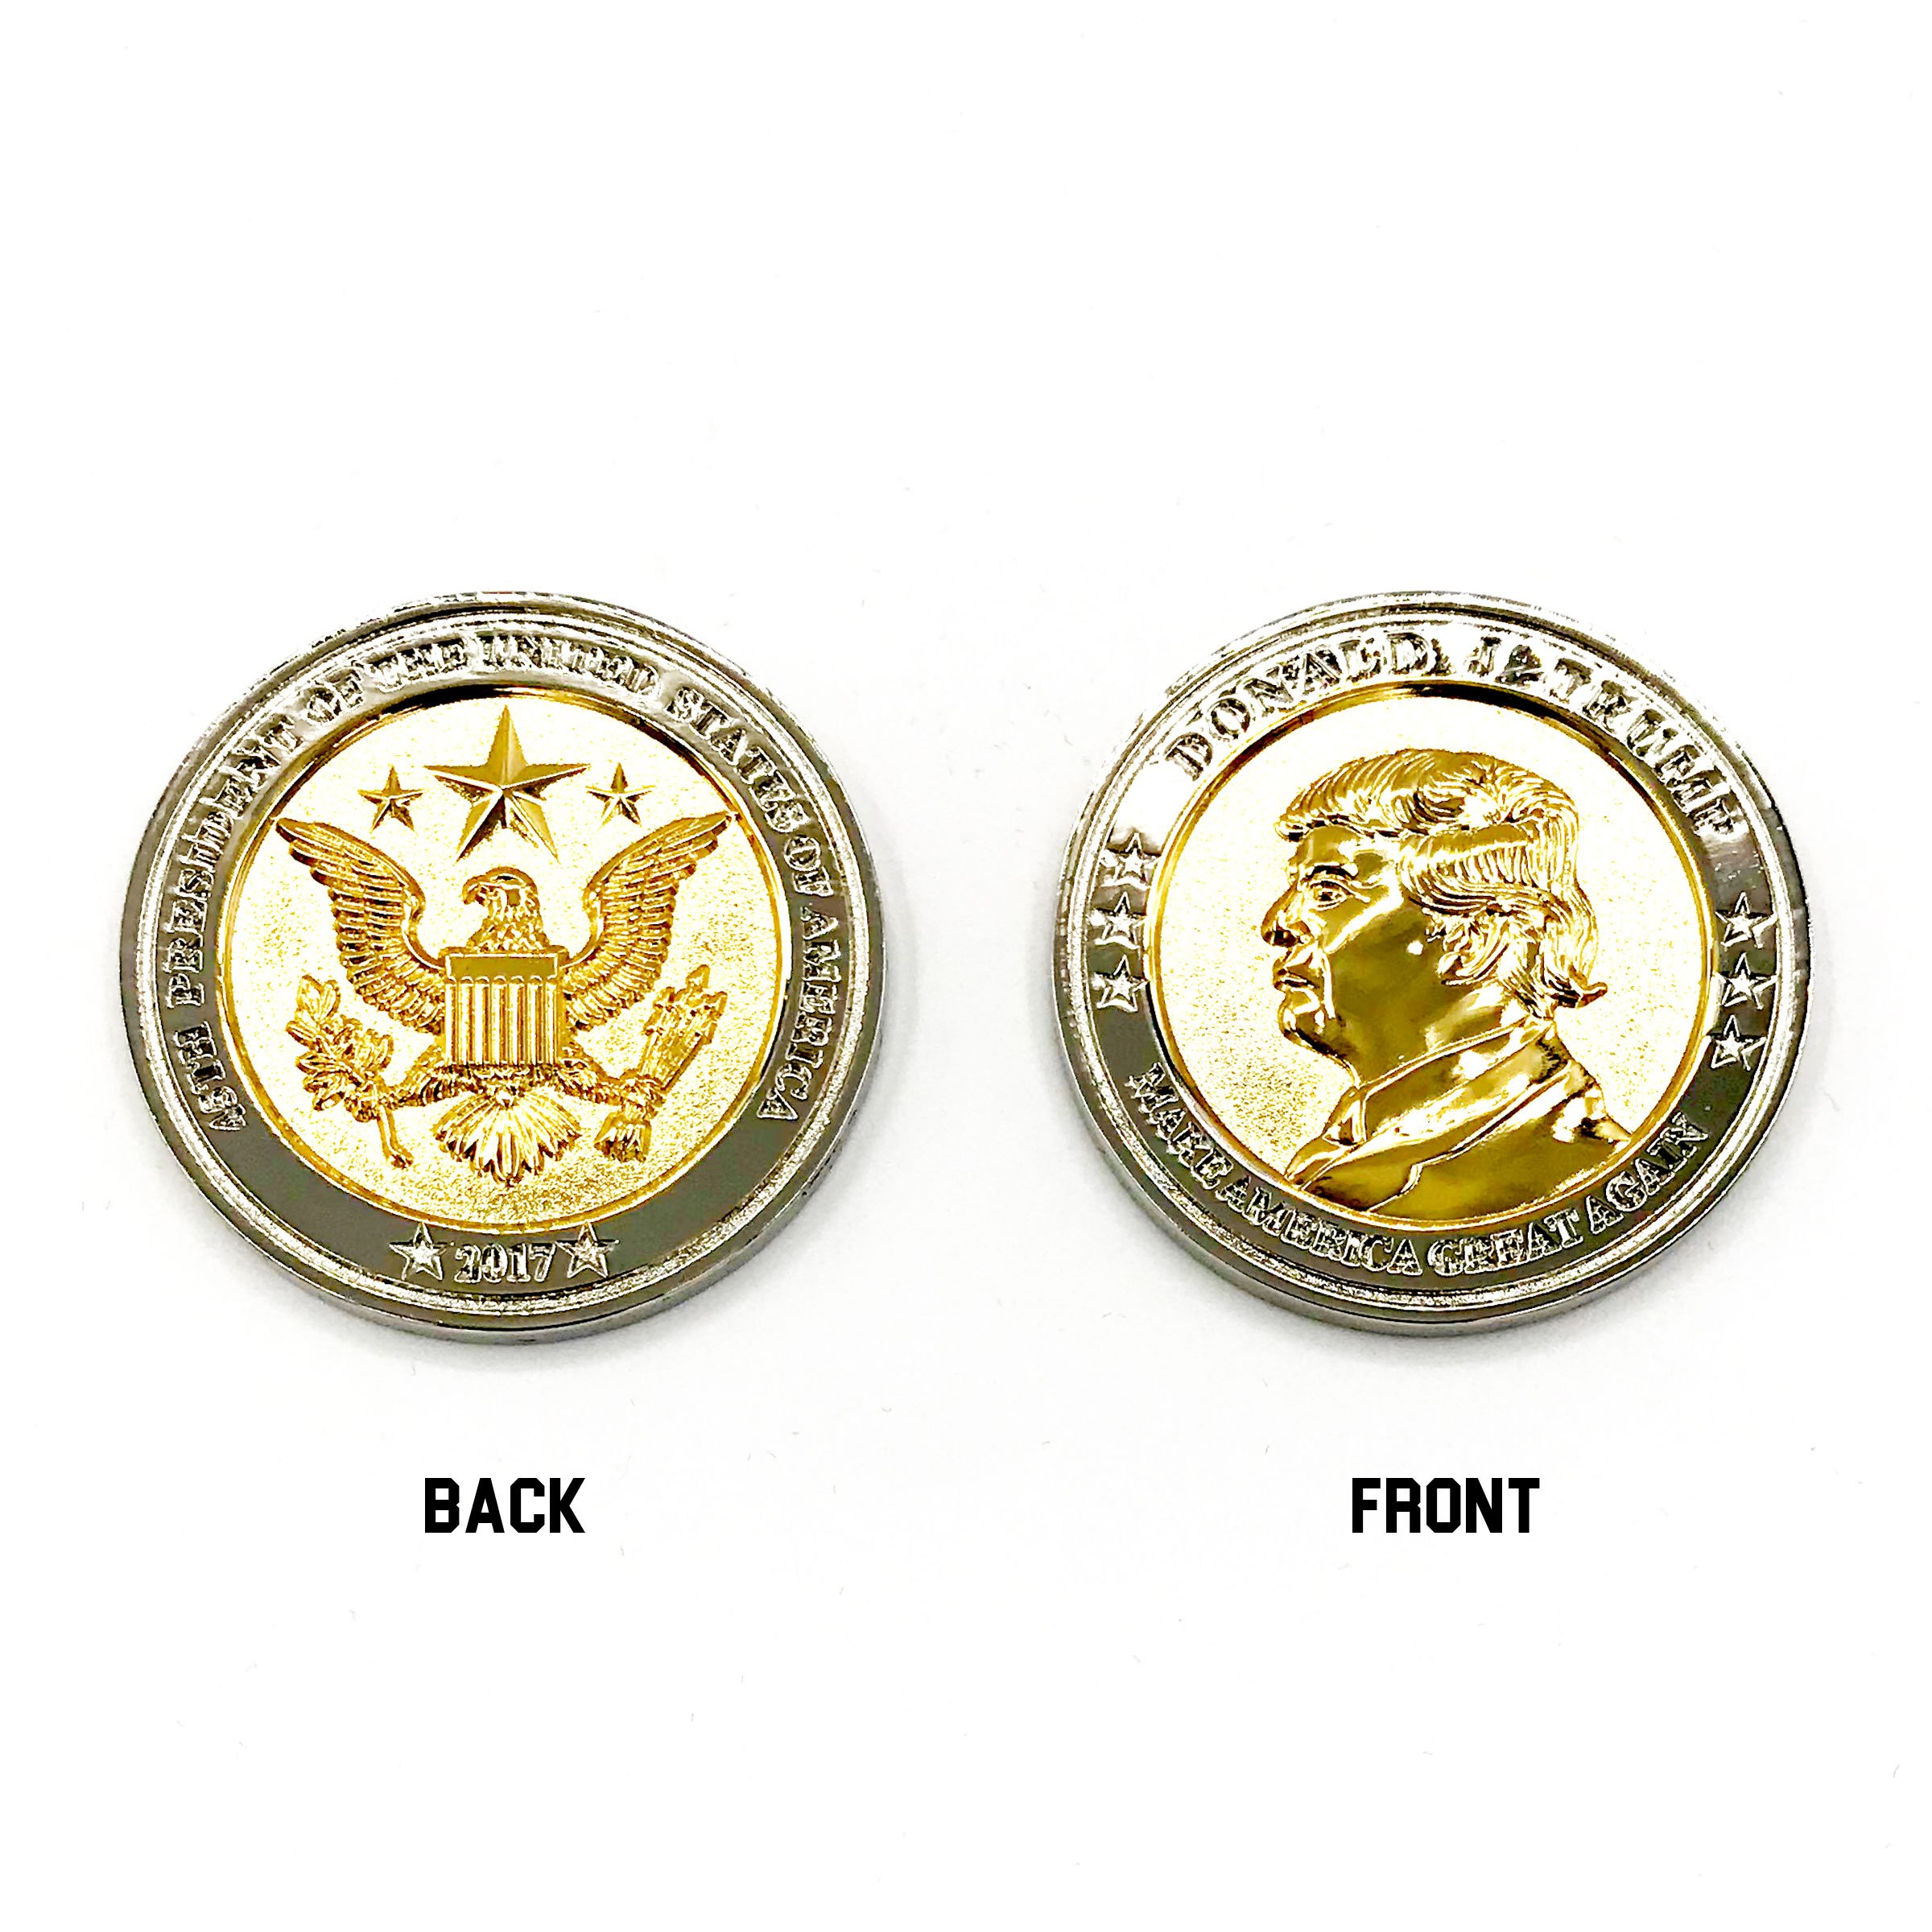 Trump Coin, 58th Presidential Inauguration of Donald J. Trump Challenge Coin by AIIZ Collectibles, 1.75'' Diameter in Shinny 24K Gold & 925 Silver Plating, packaged in Black Velvet Case by AIIZ Collectibles (Image #3)